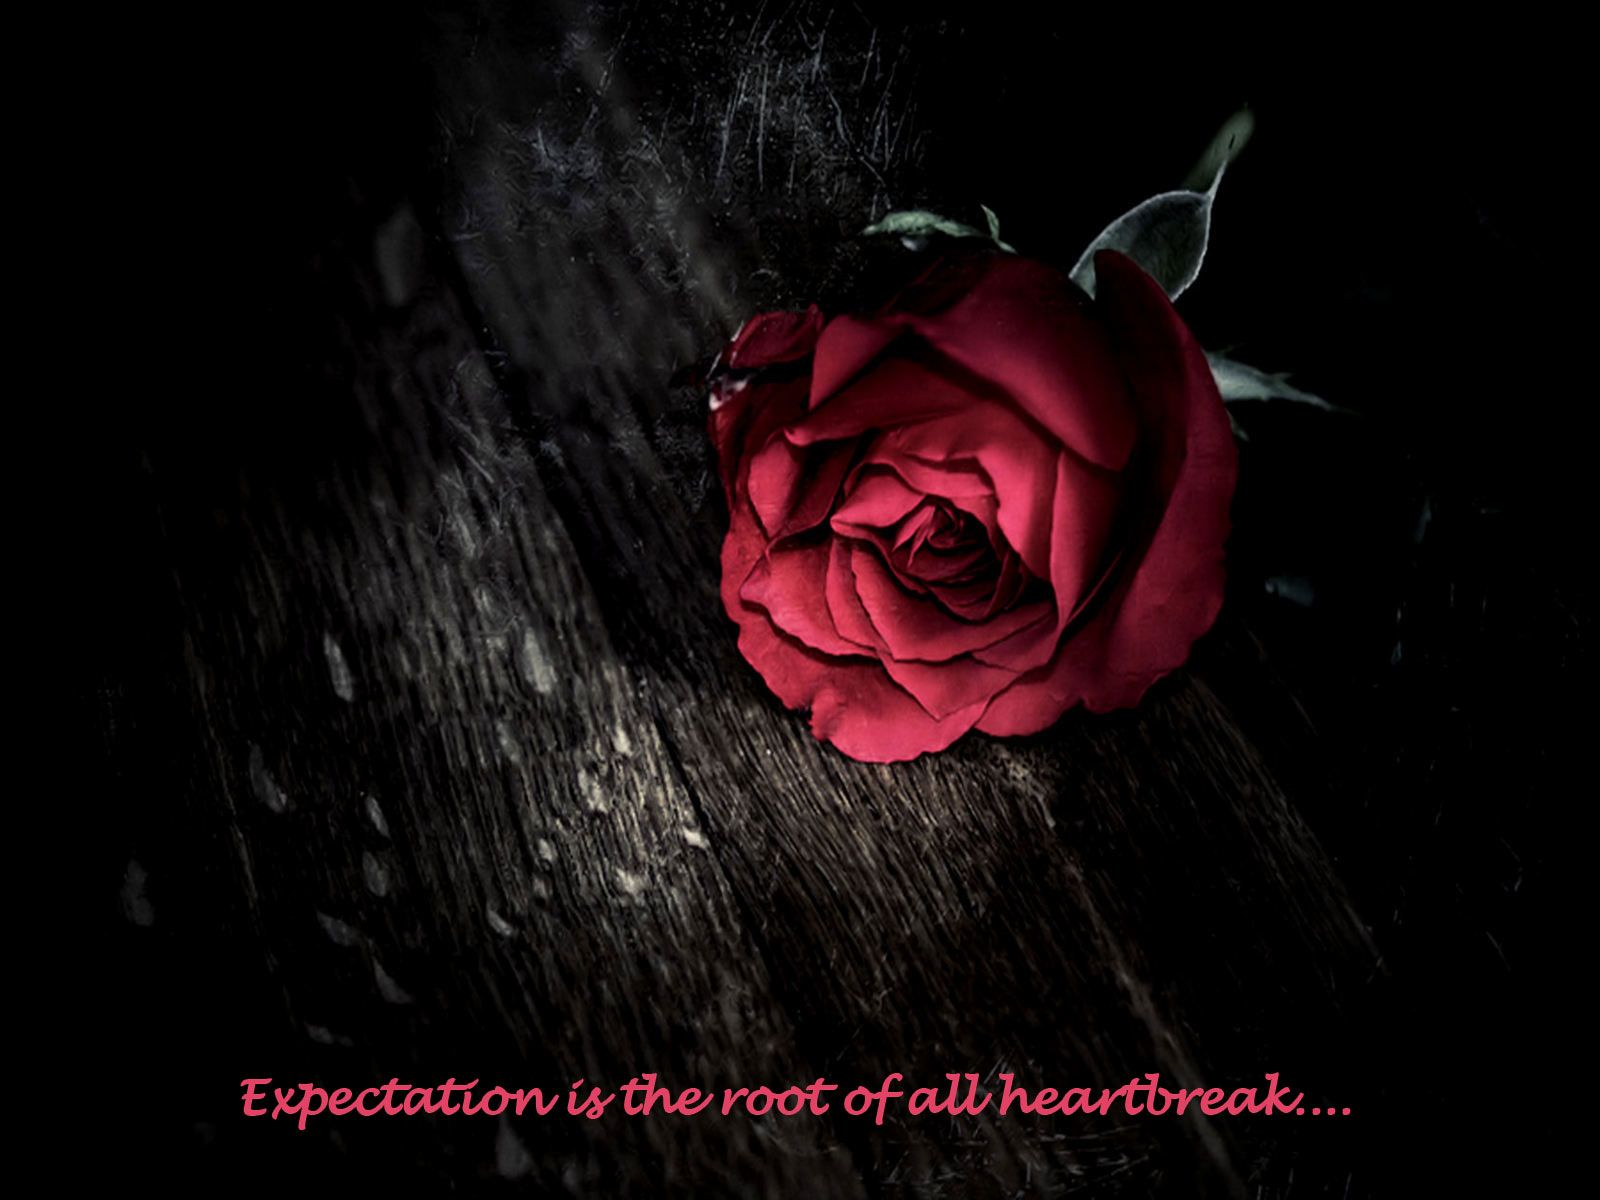 Pin On Love Quotes Miss You So Much You Live In My Heart Every Moment